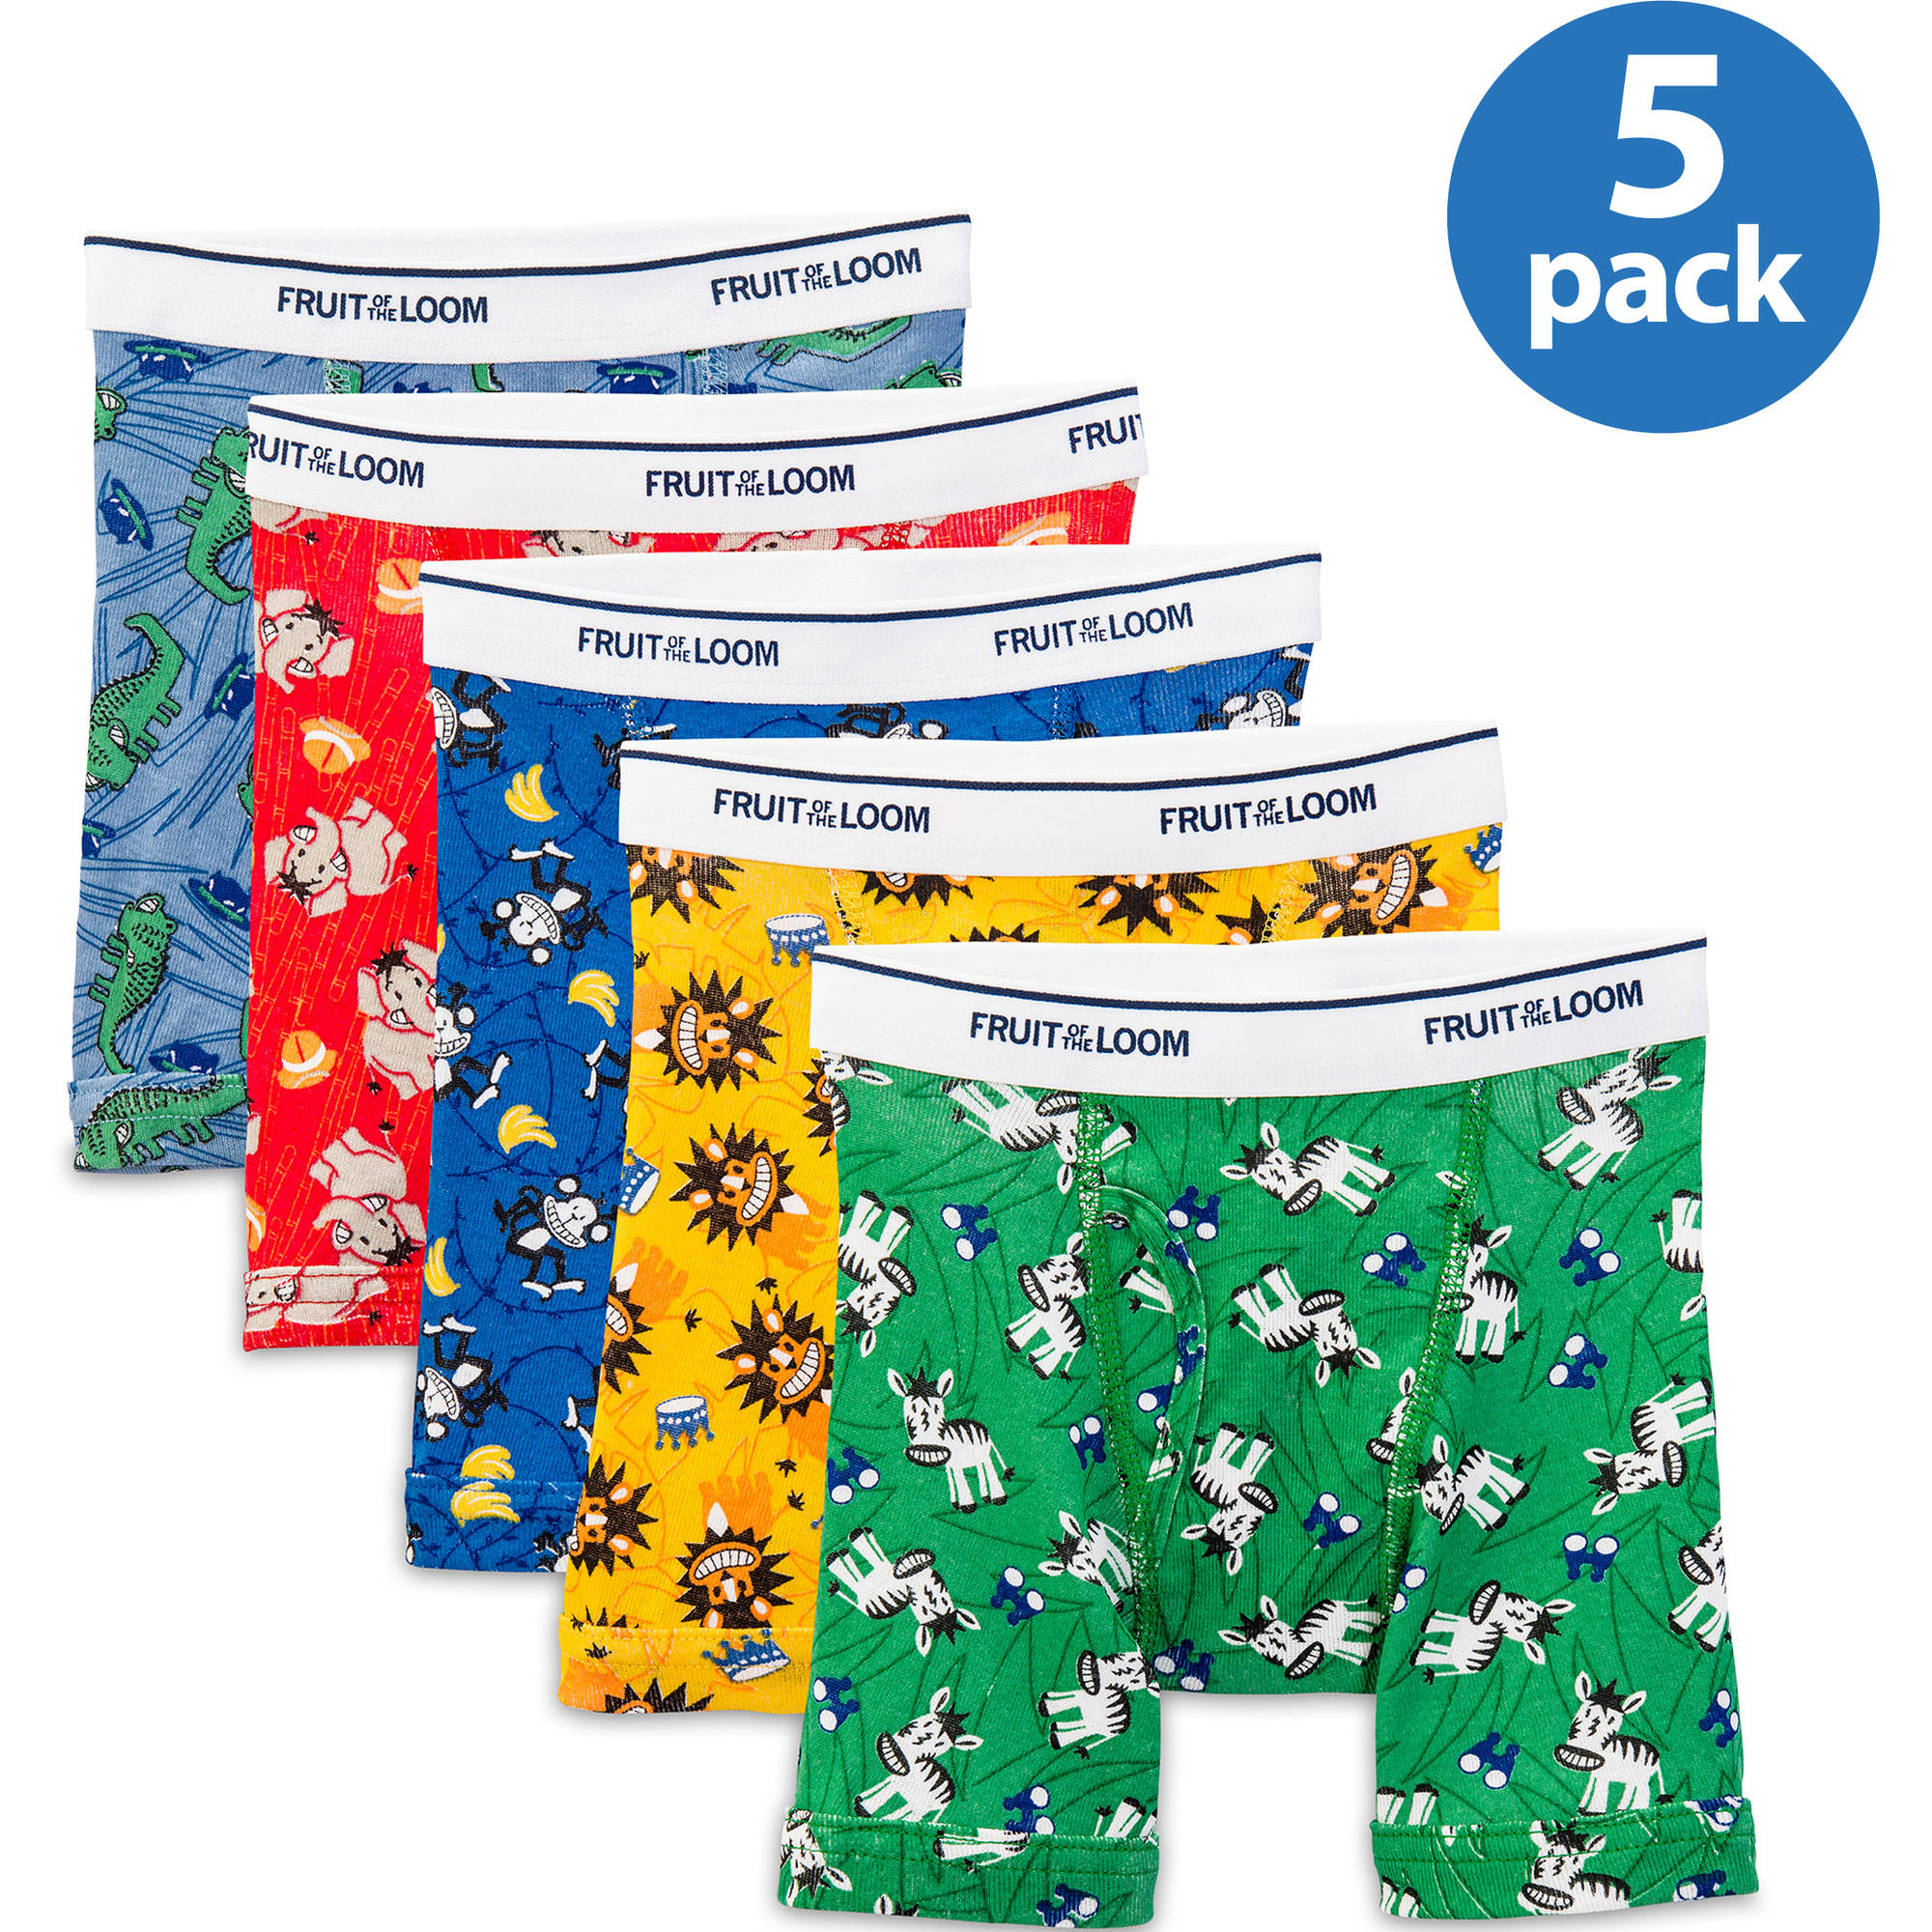 Fruit of the Loom 5Pack Boys Assorted ComfortSoft Boxer Briefs Underwear